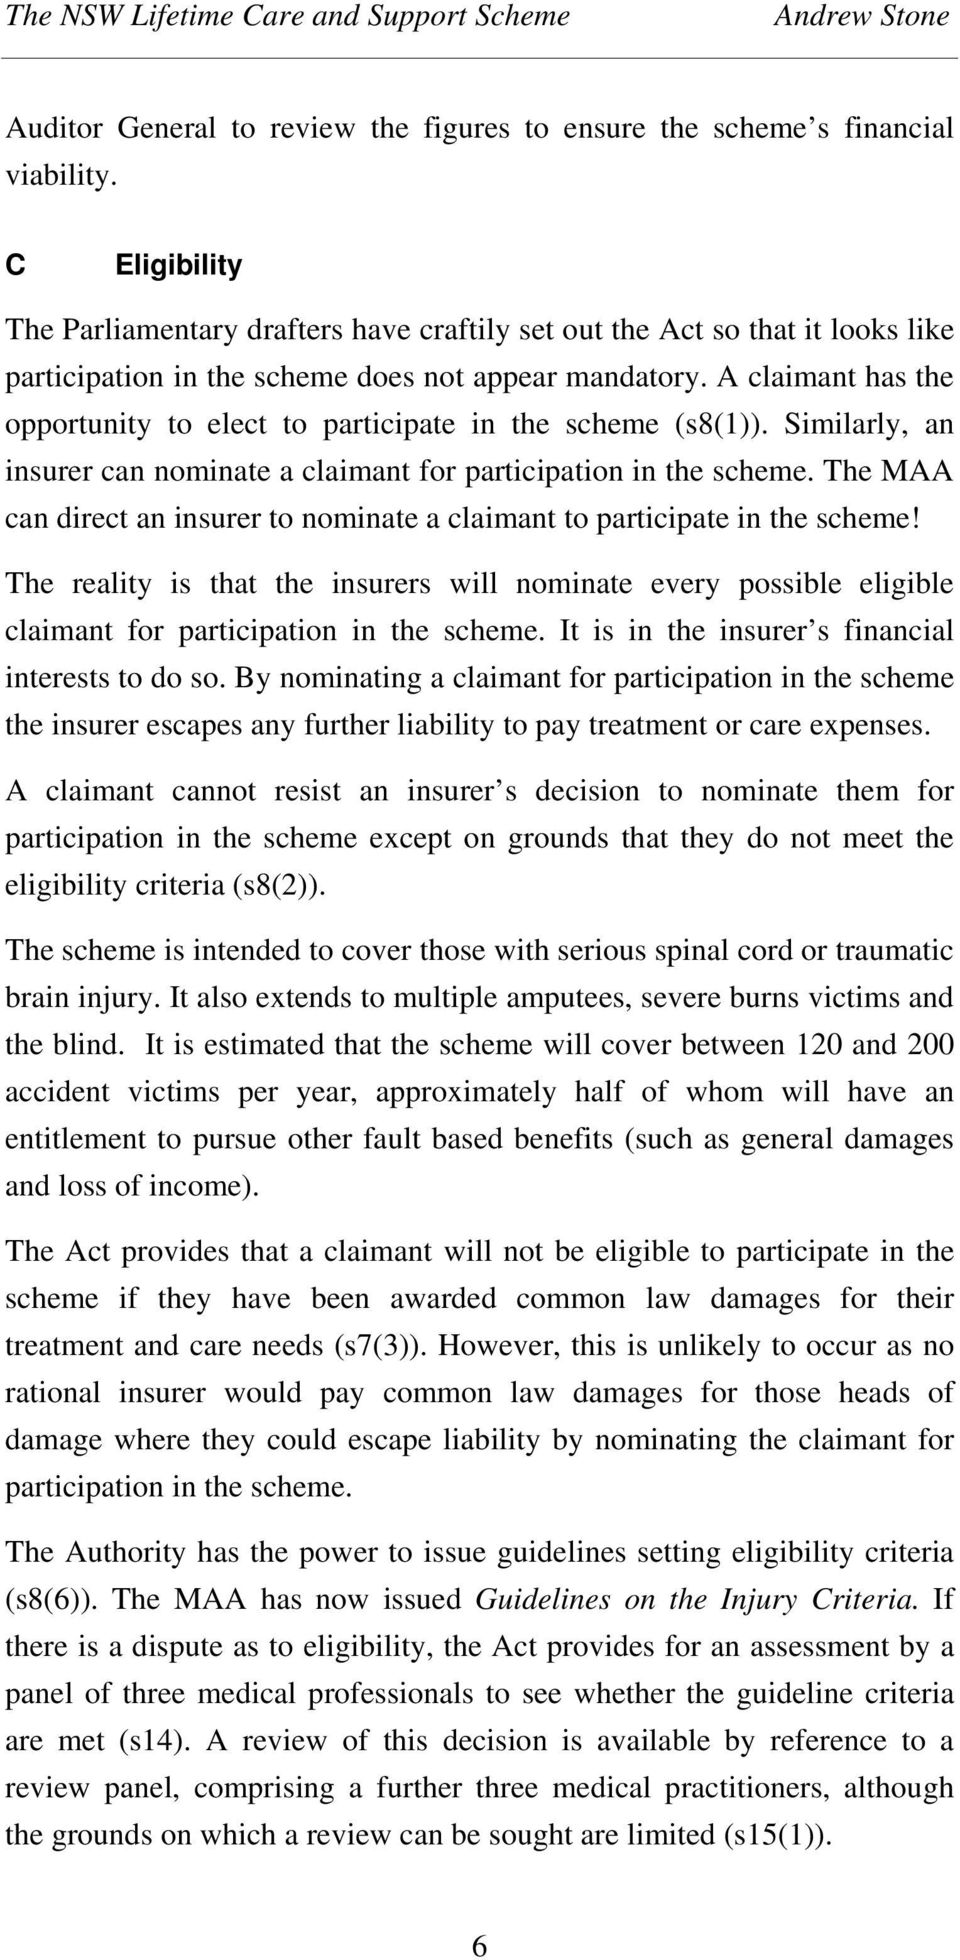 A claimant has the opportunity to elect to participate in the scheme (s8(1)). Similarly, an insurer can nominate a claimant for participation in the scheme.